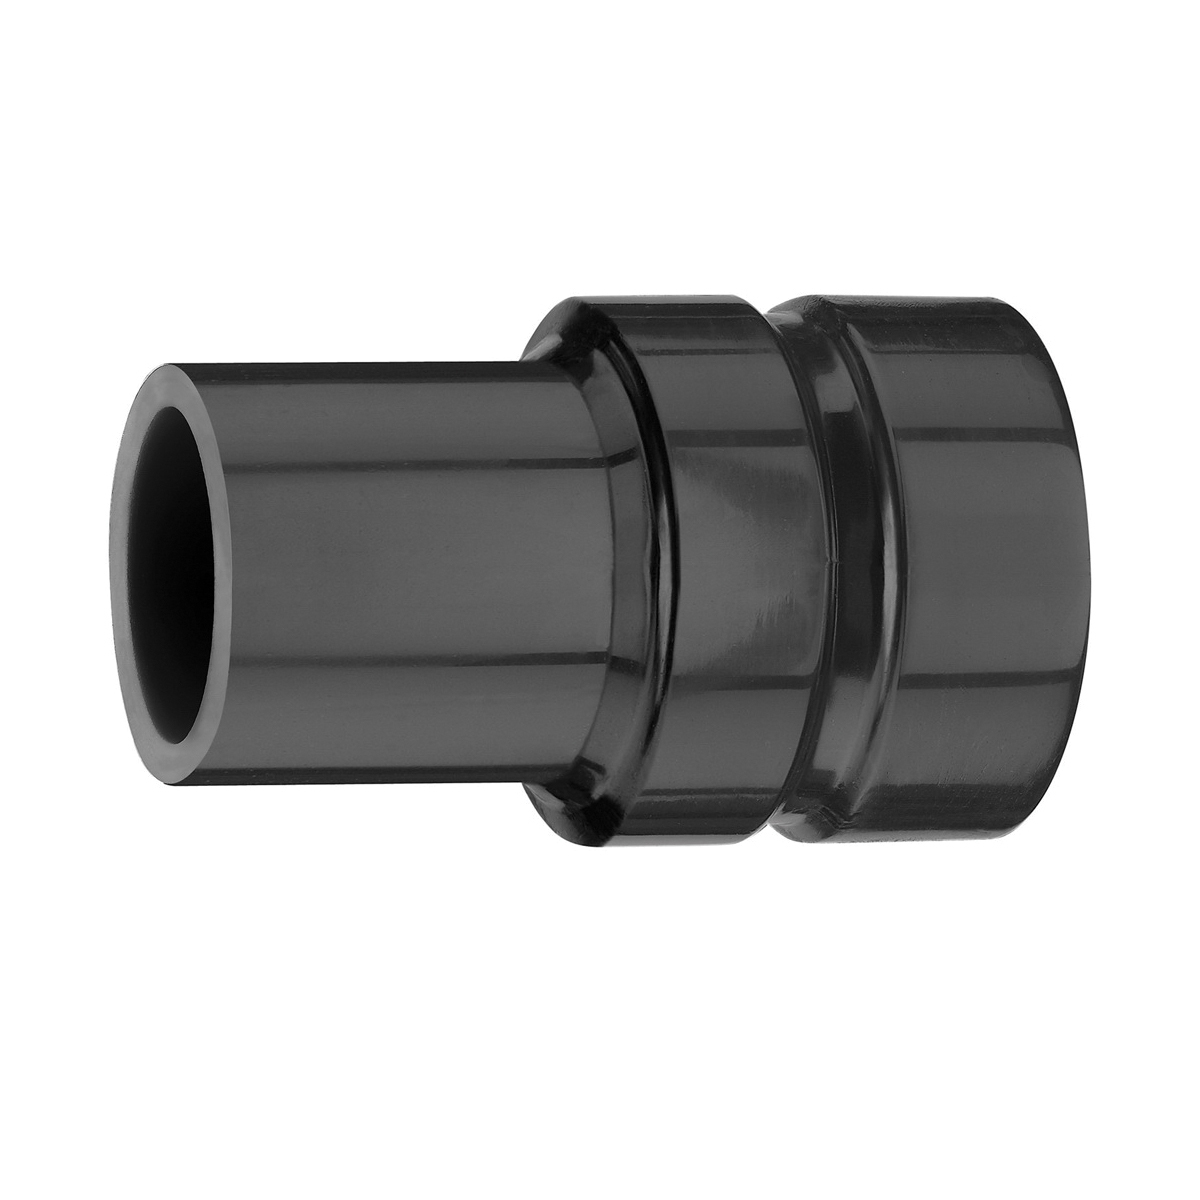 DeWALT® DWV9170 Vacuum Adapter, 1-1/4 in, 8.2 in L, For Use With DWV9000 Universal Connector and DeWALT® Dust Extractor, Black